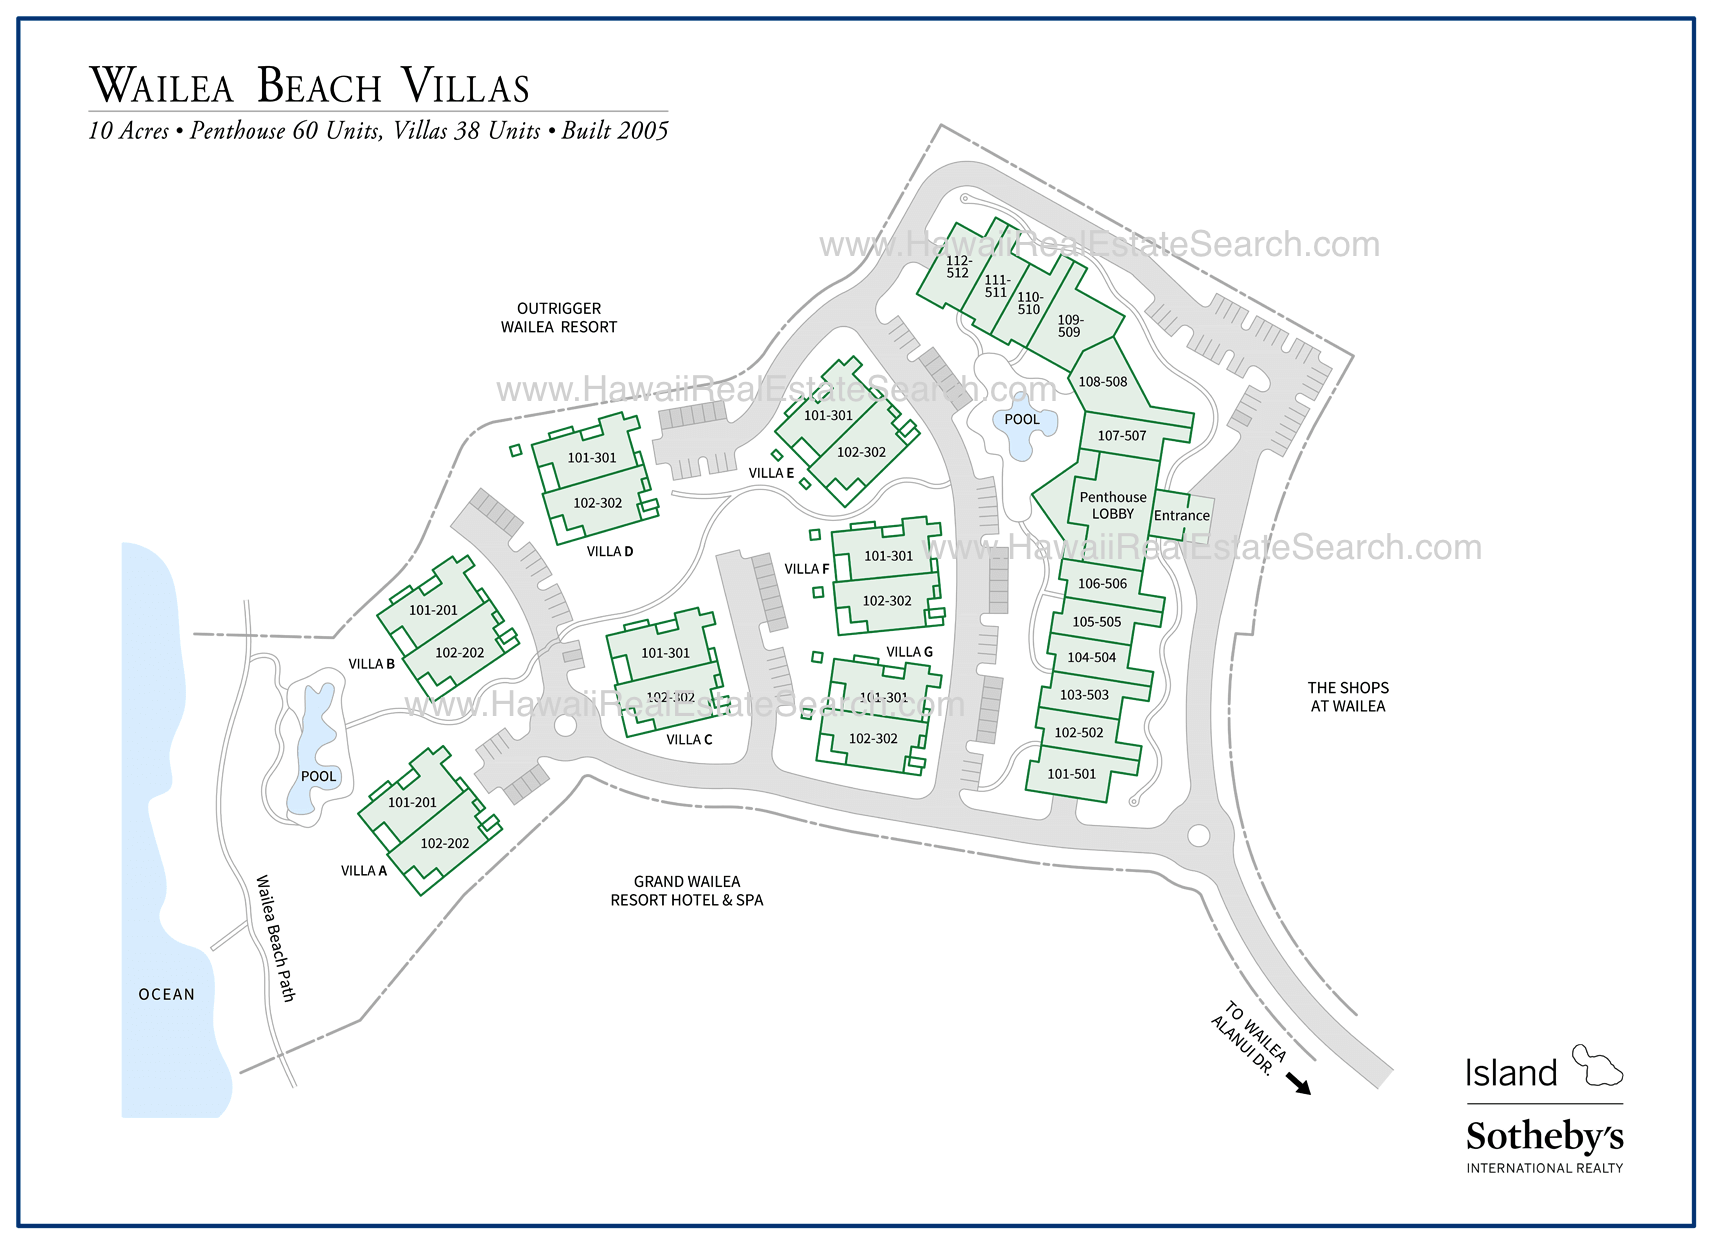 Wailea Beach Villas Map